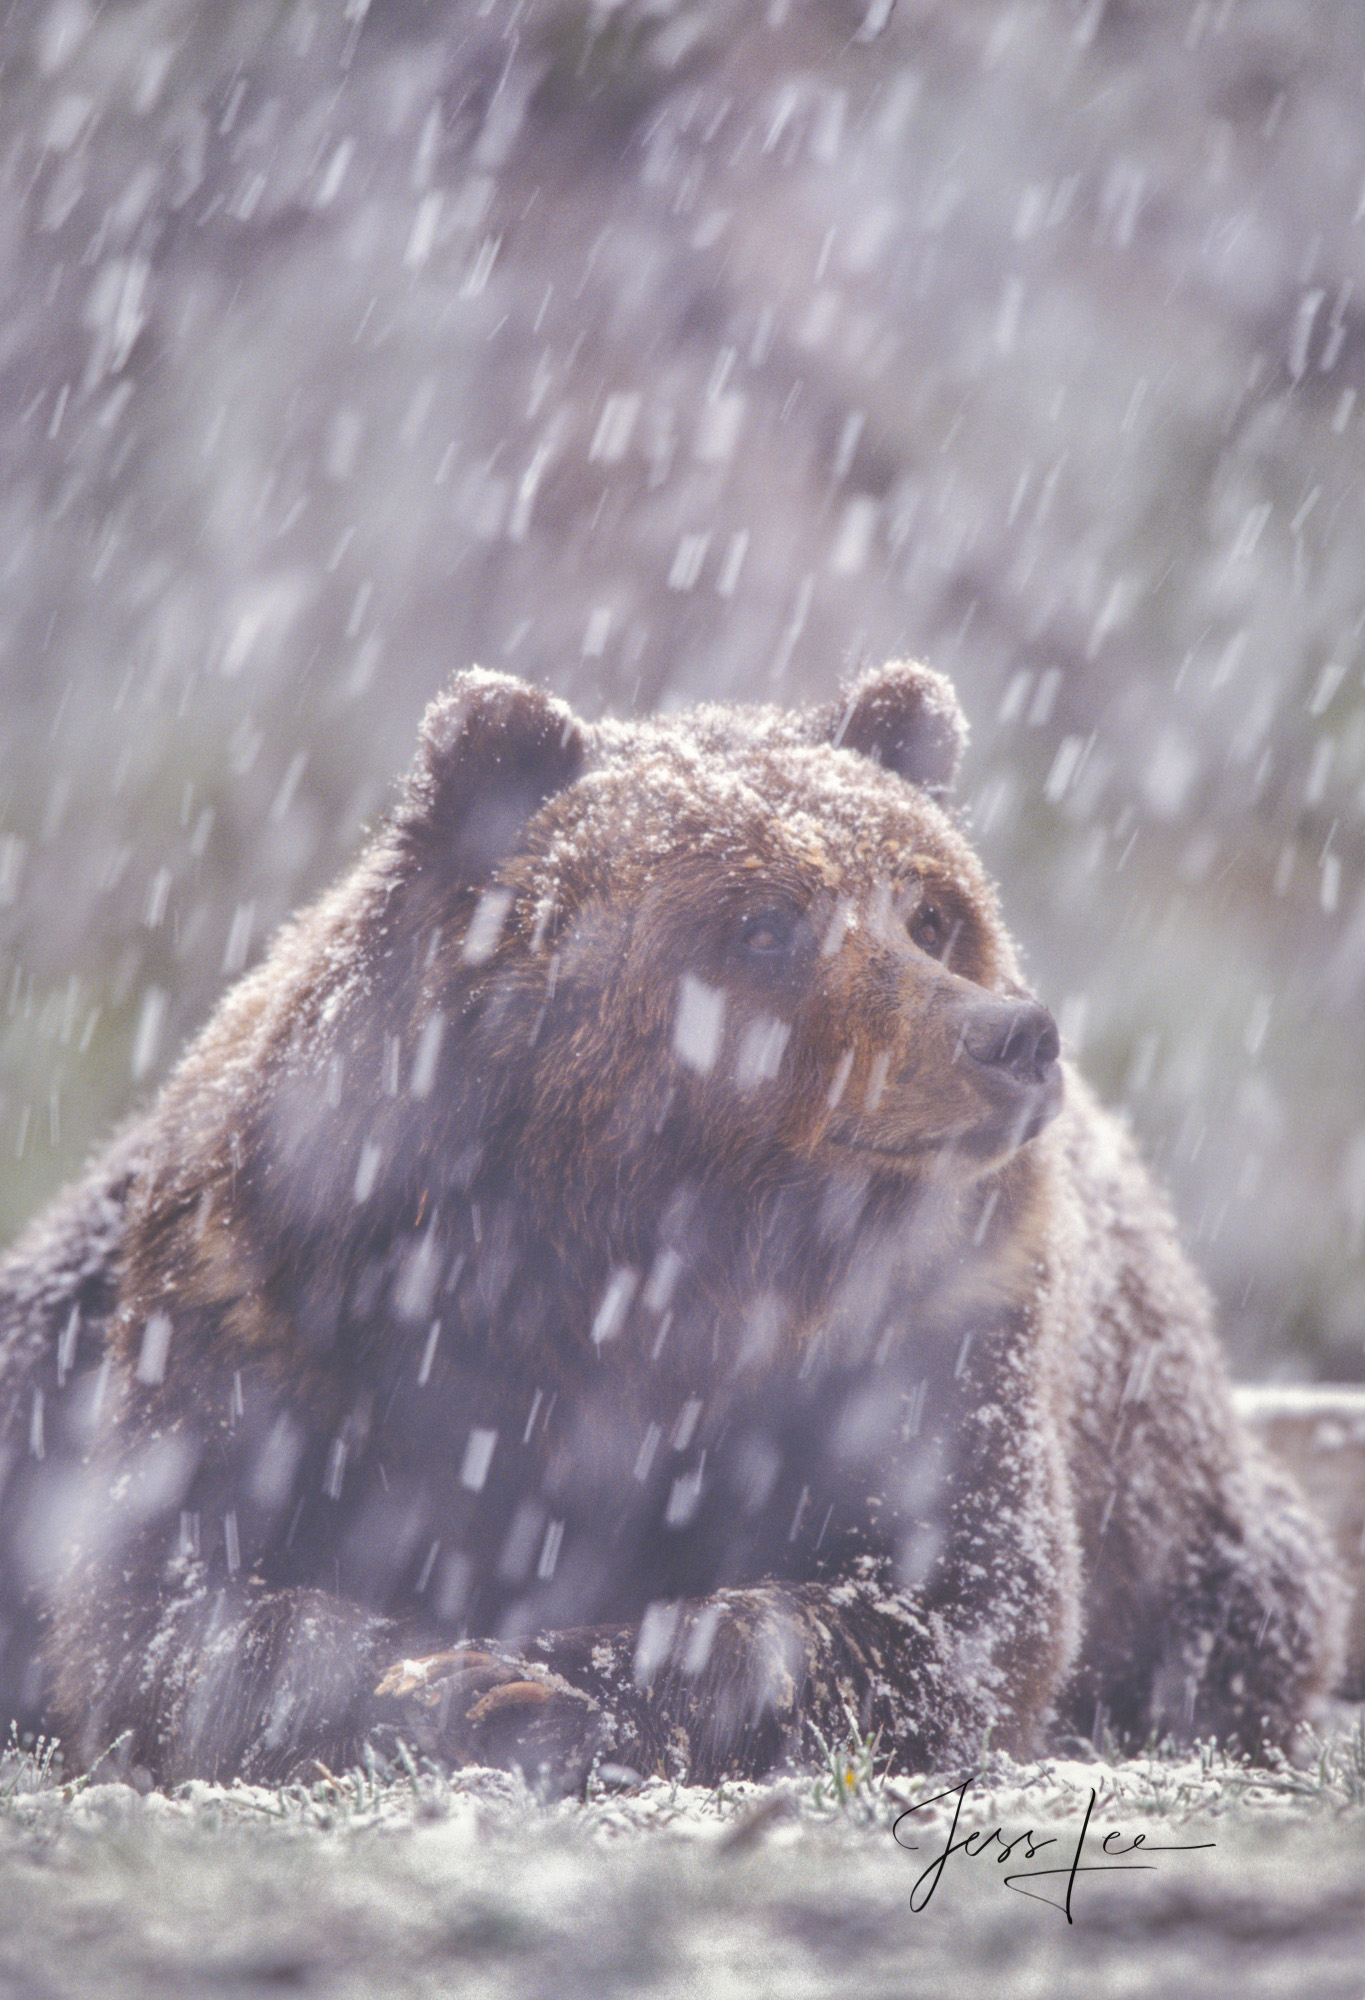 Grizzly Bear in Yellowstone Spring snow. Limited Edition of 800 prints, These Grizzly bear fine art wildlife photographs are...